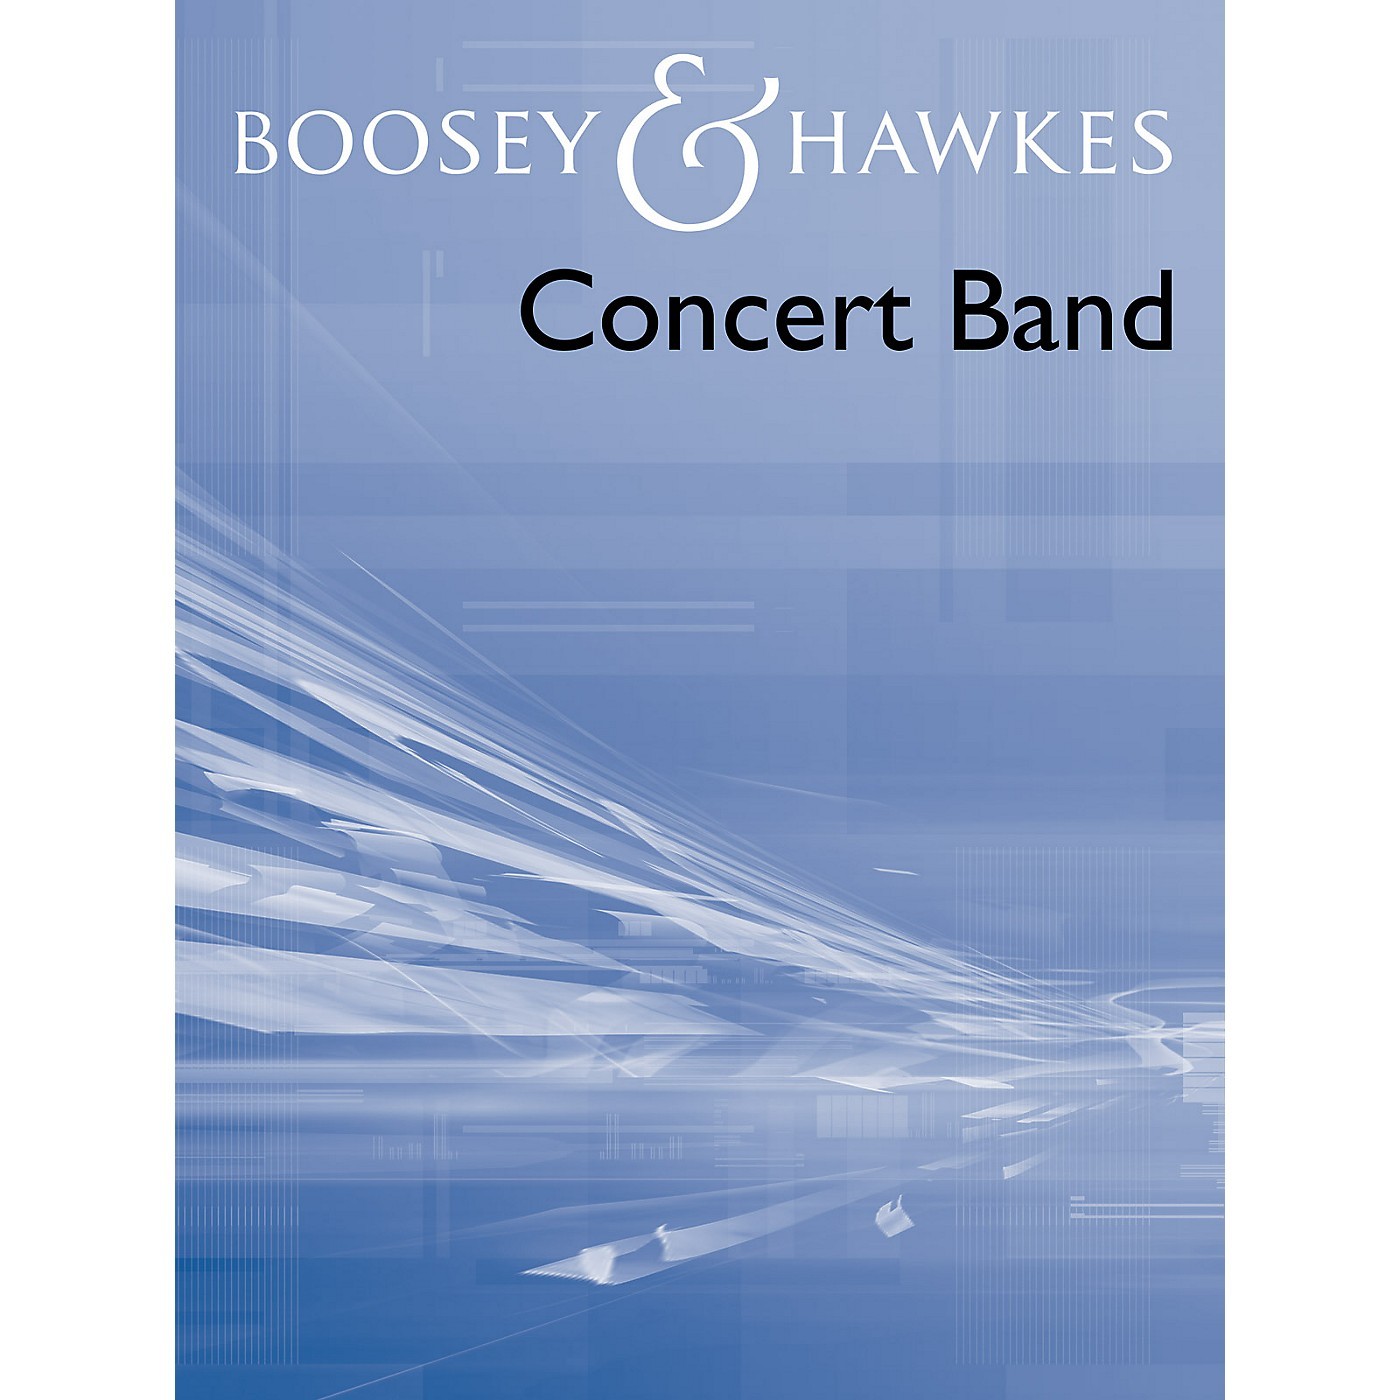 Boosey and Hawkes Stomp Your Foot (from The Tender Land) Concert Band Composed by Aaron Copland Arranged by Thomas C. Duffy thumbnail